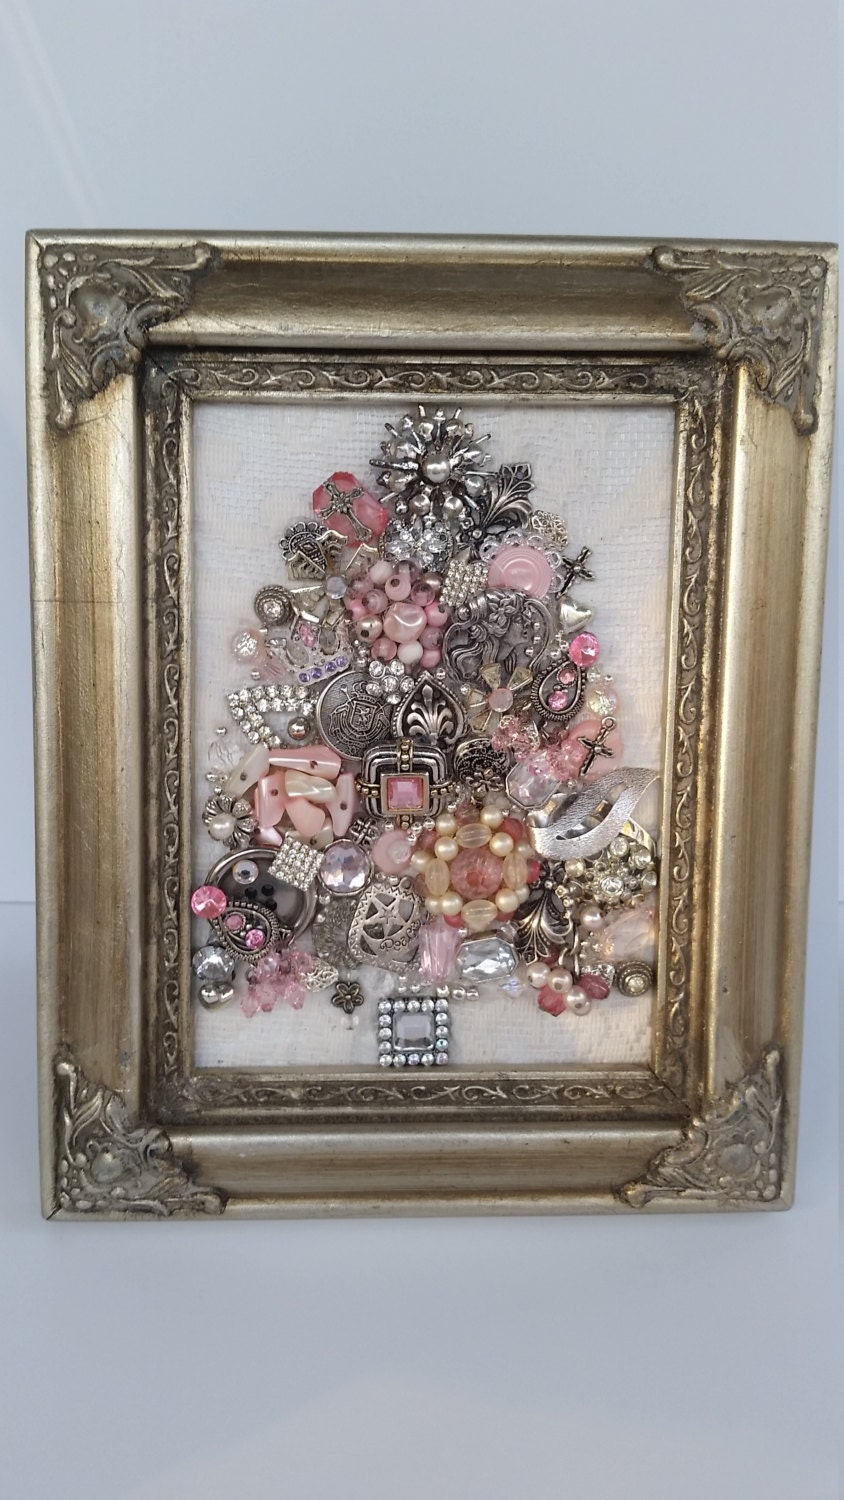 Jewelry Art Vintage Jewelry Art Framed Jewelry Art Jewelry